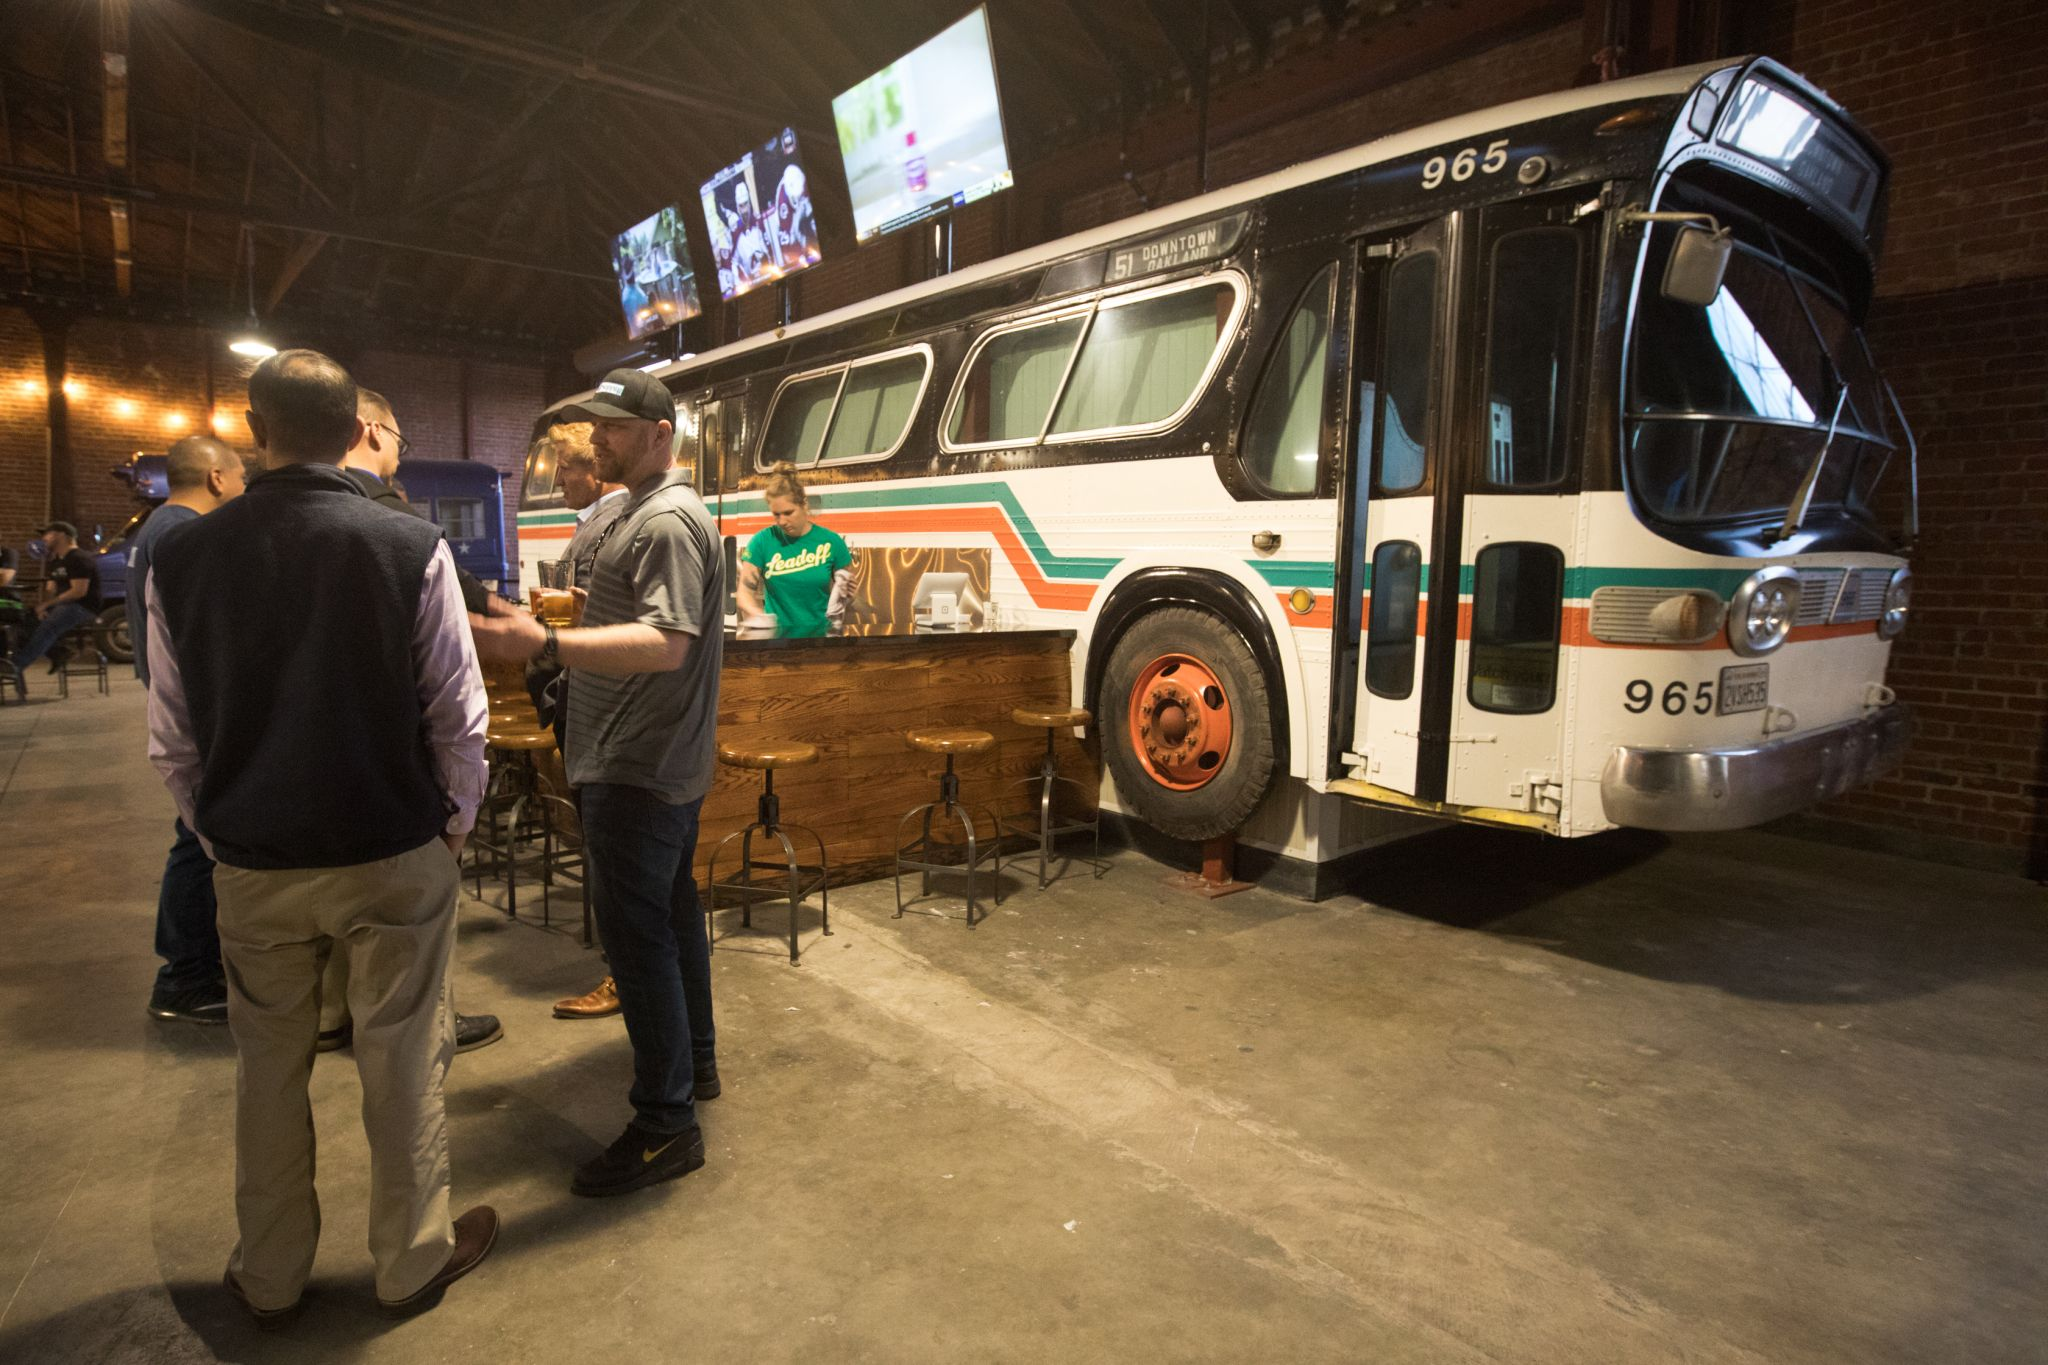 Line 51 Brewery Opens In Oakland With A Transit-inspired Surprise In Store For Customers photo